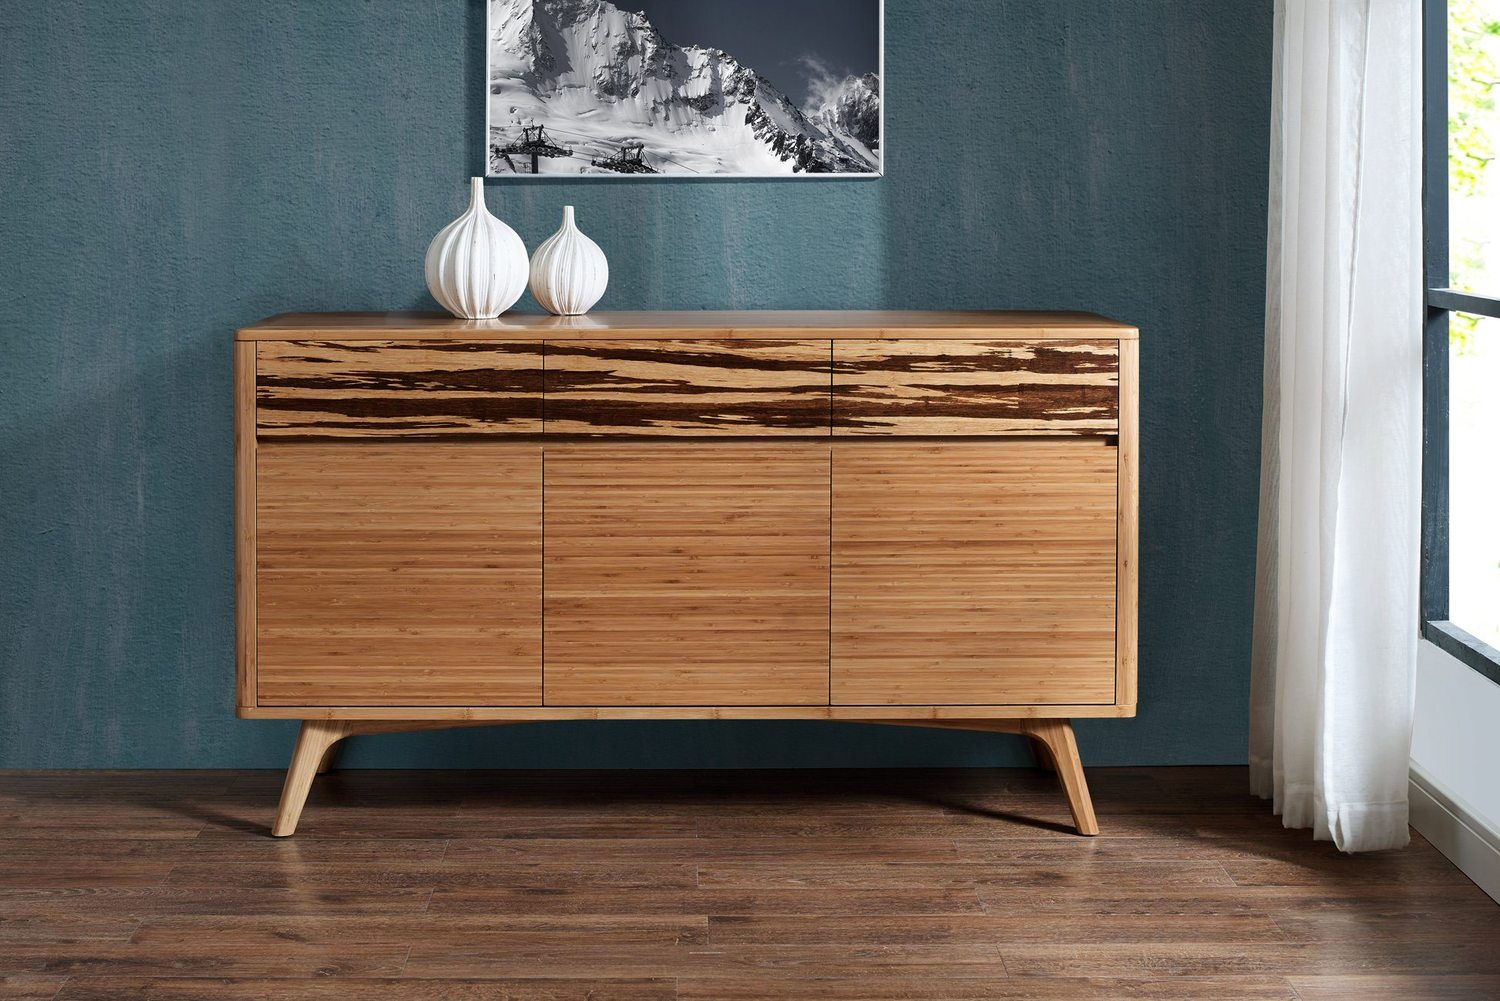 Greenington Sustainable Bamboo Furniture available on Made Trade